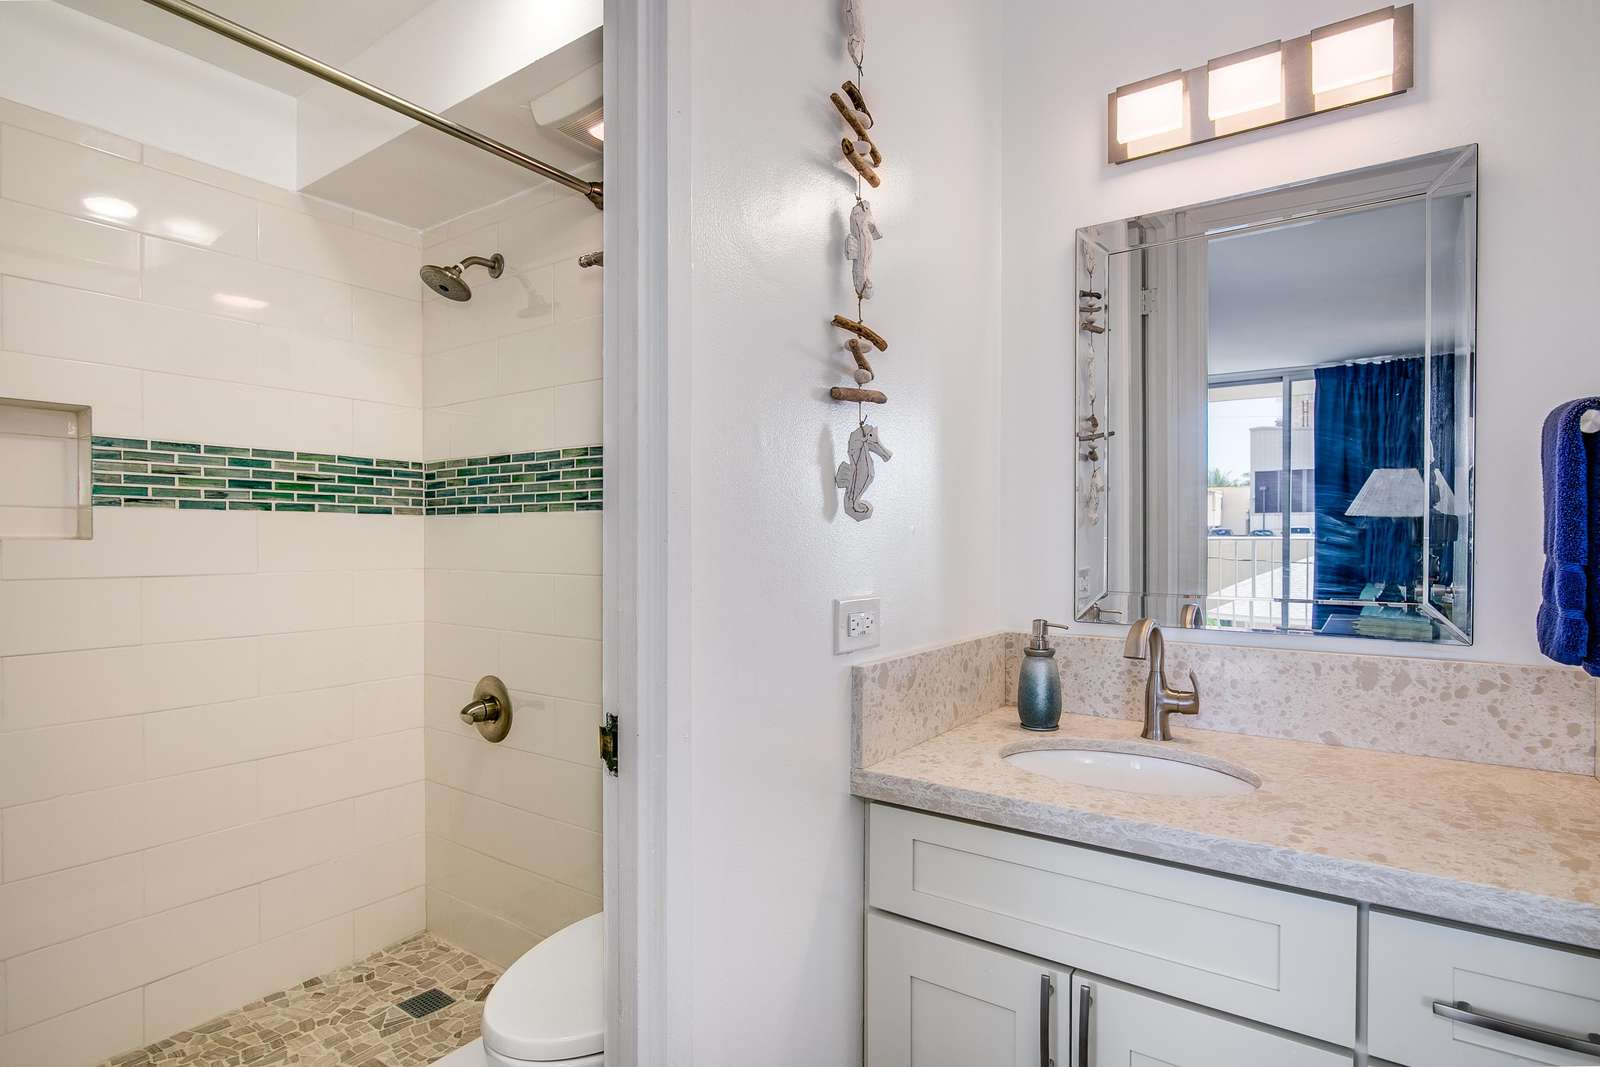 Fully remodeled Bathroom and Vanity area.